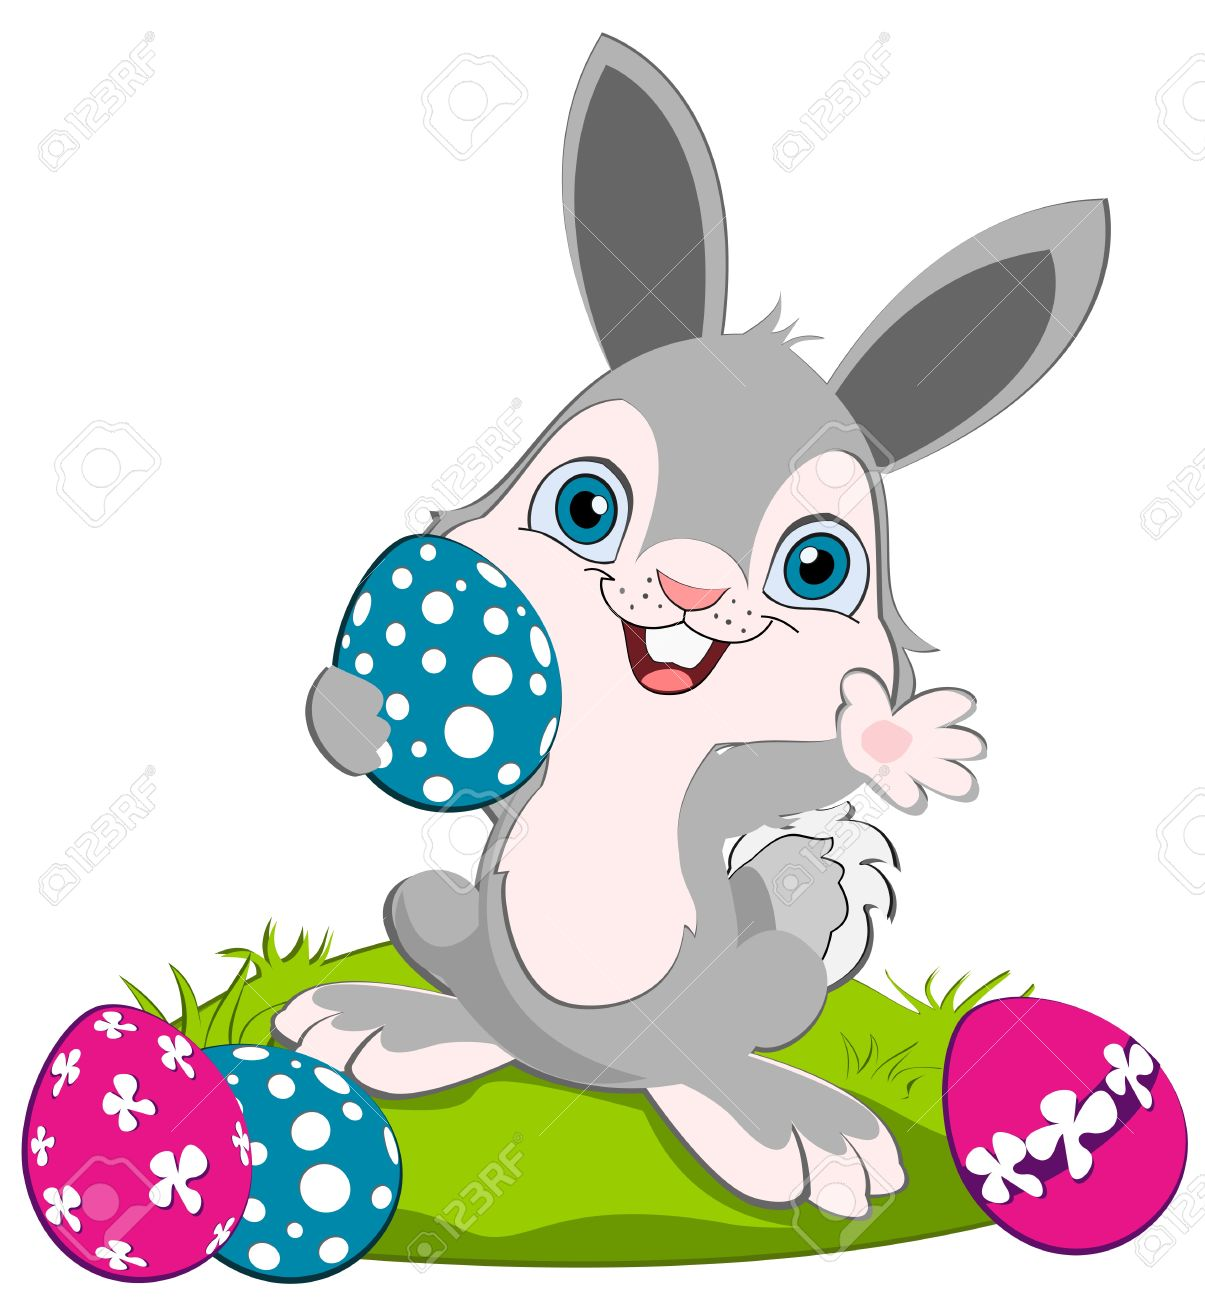 April bunny. Easter pictures free download